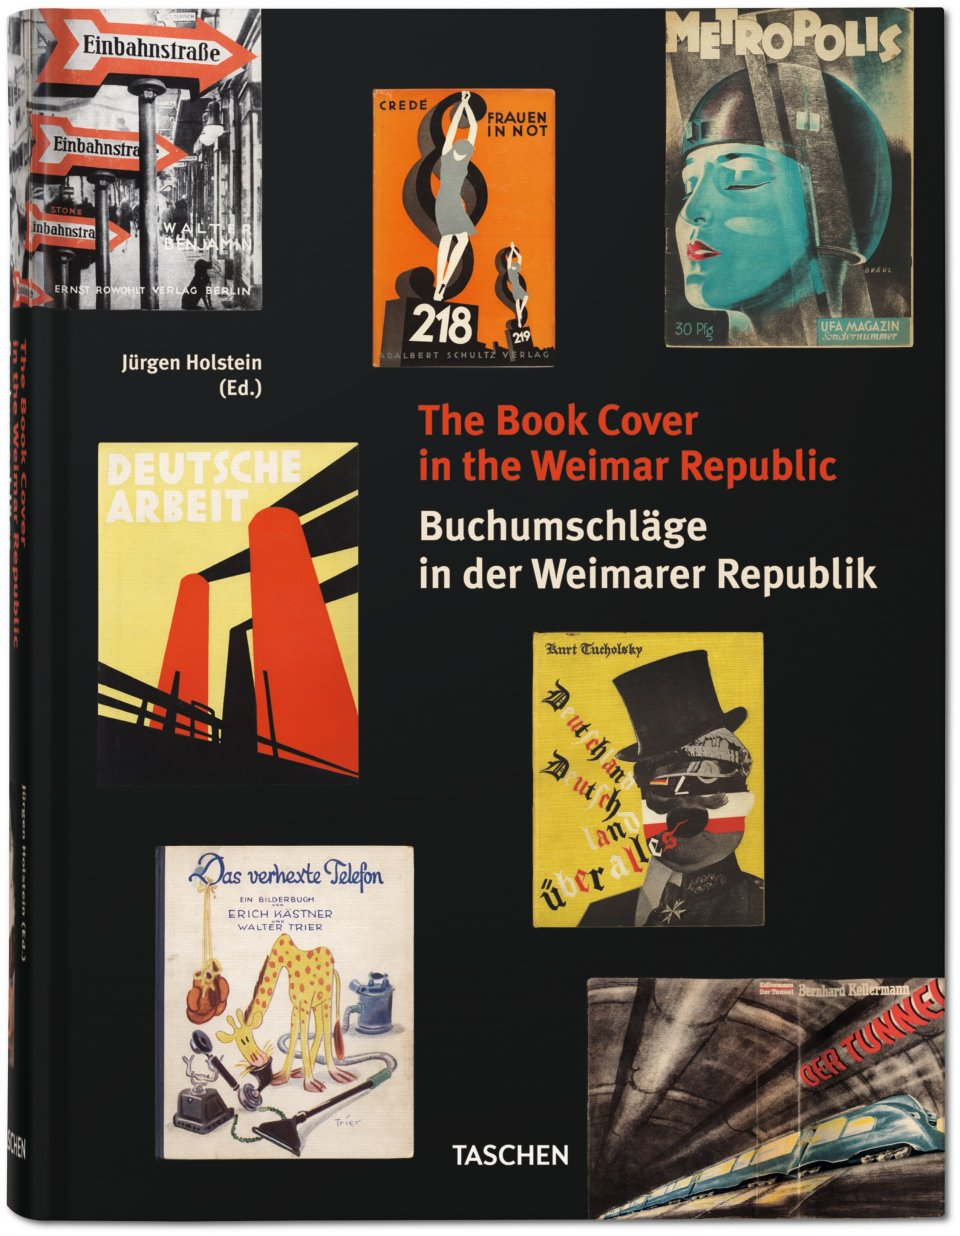 book_covers_weimar_republic_va_gbd_3d_04601_1505151446_id_947033